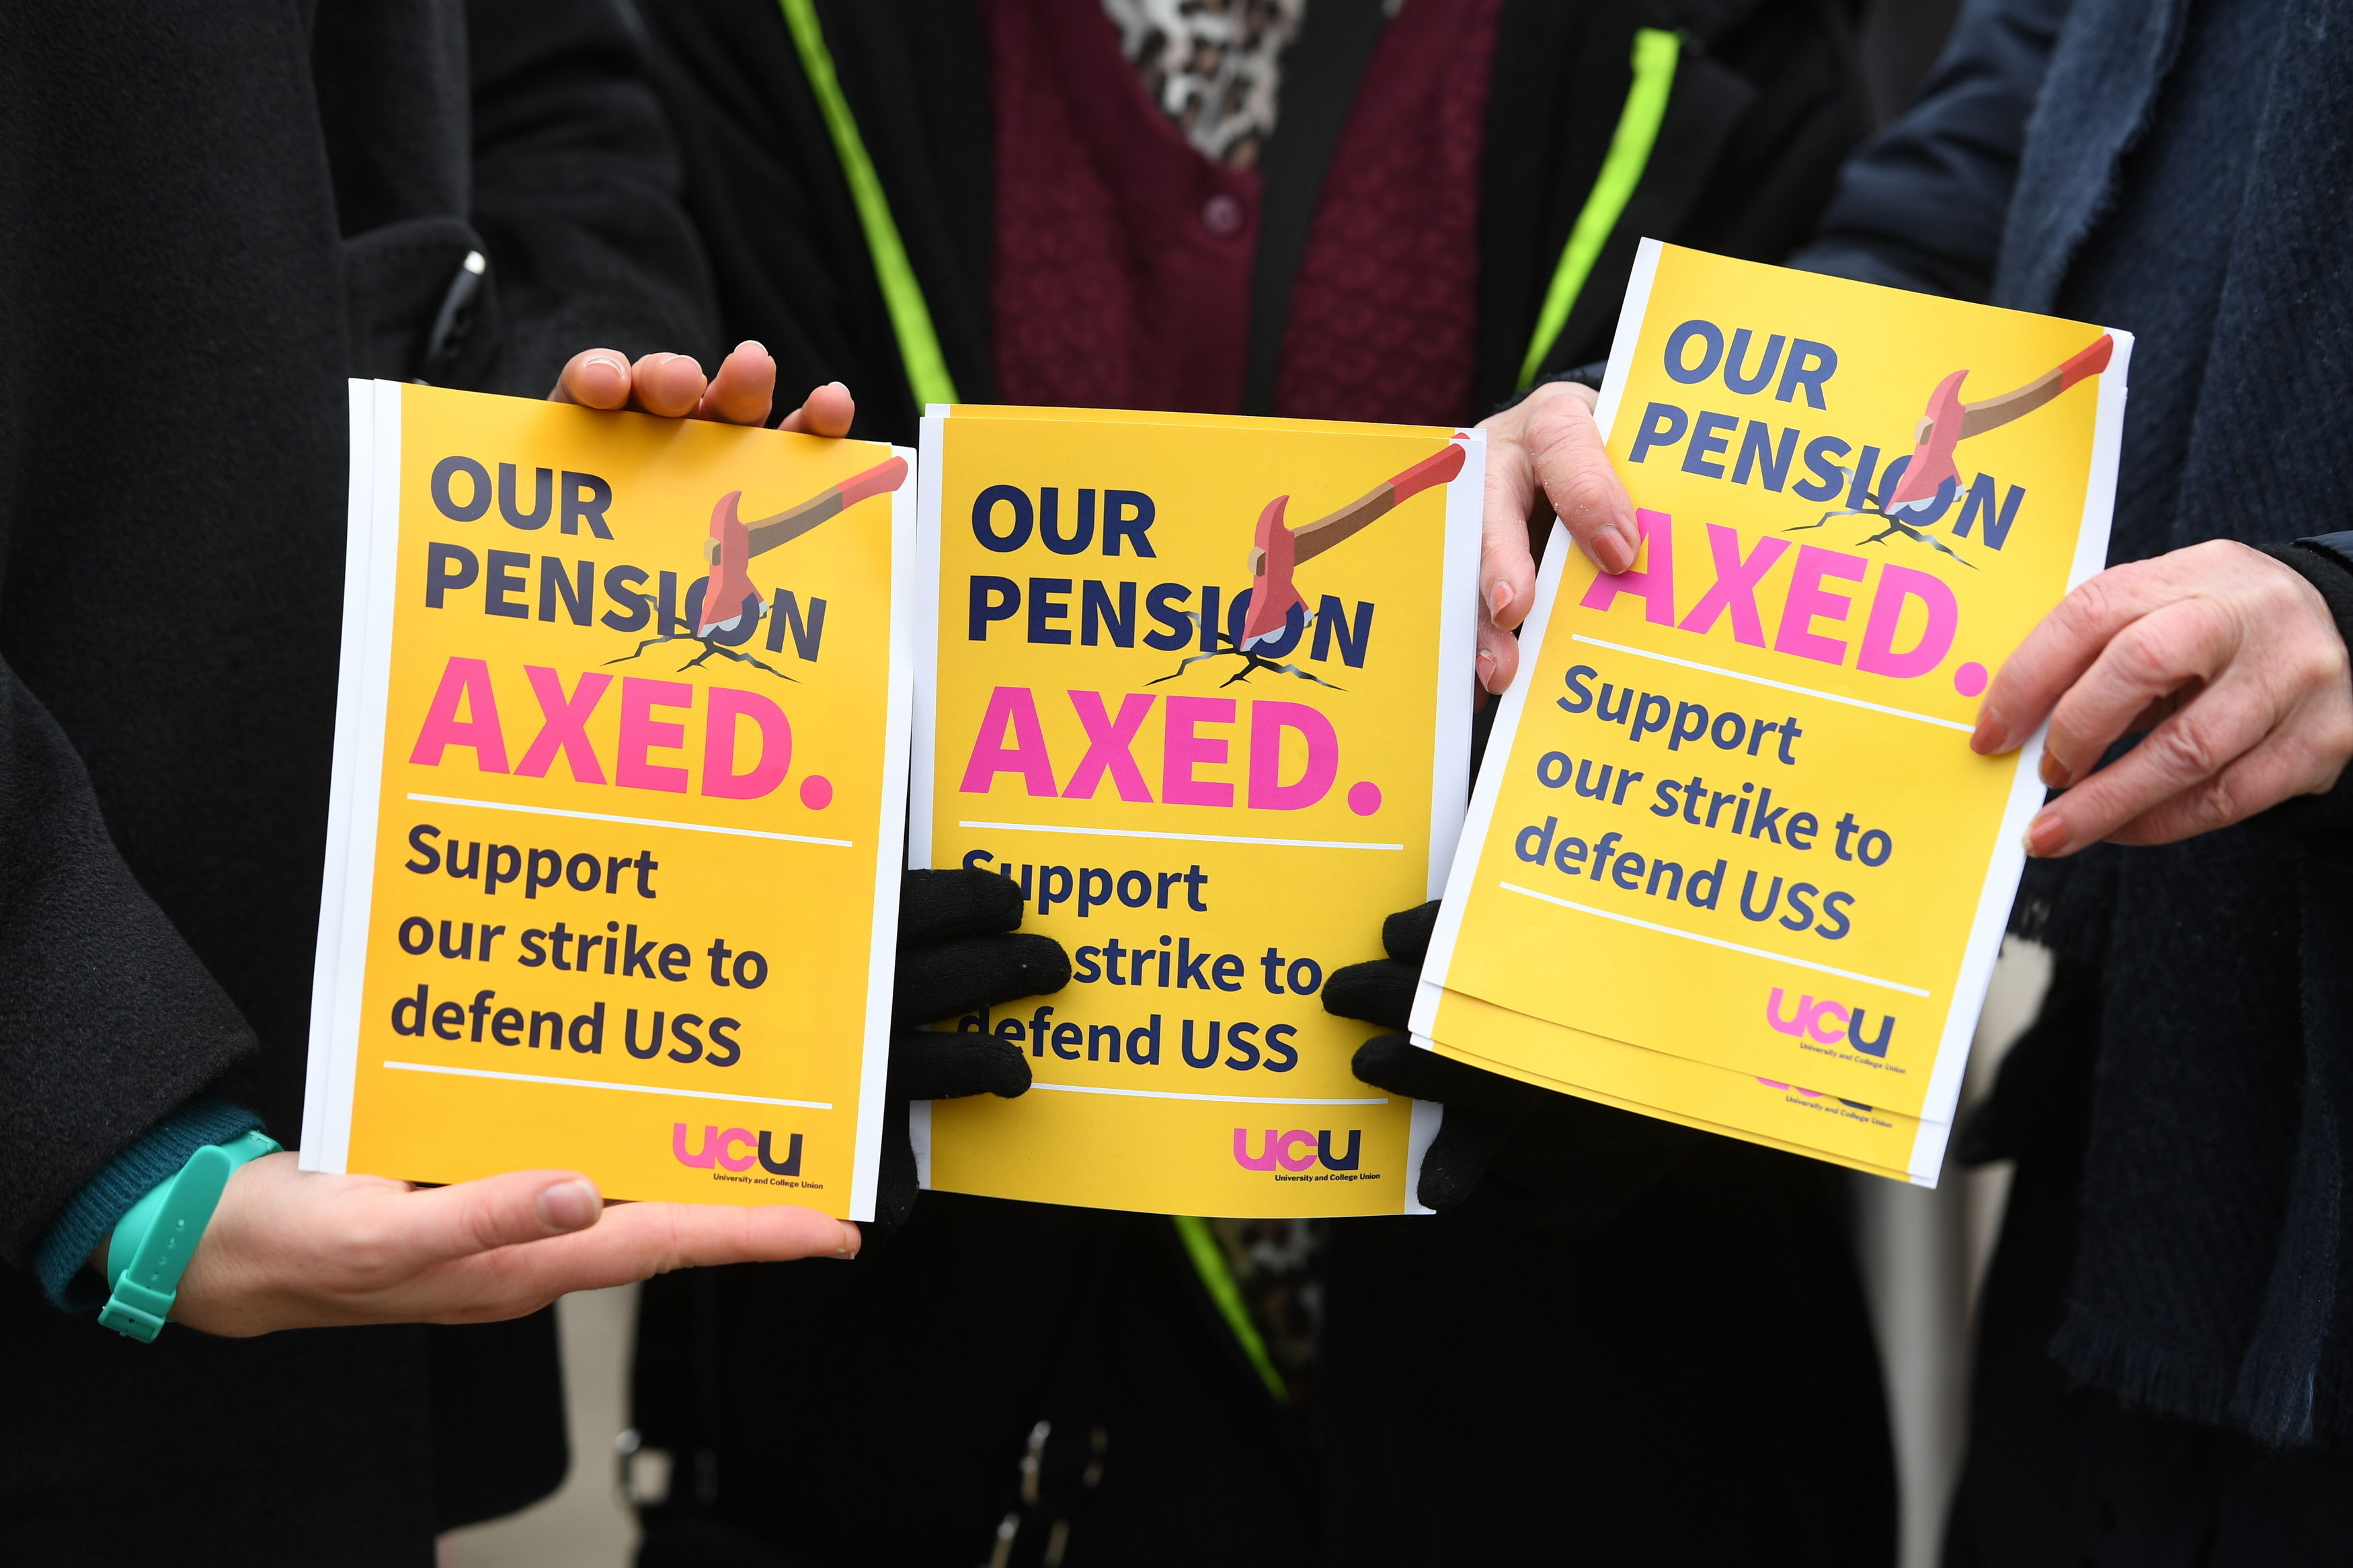 Show solidarity with UCU strikes over pensions, says CSP